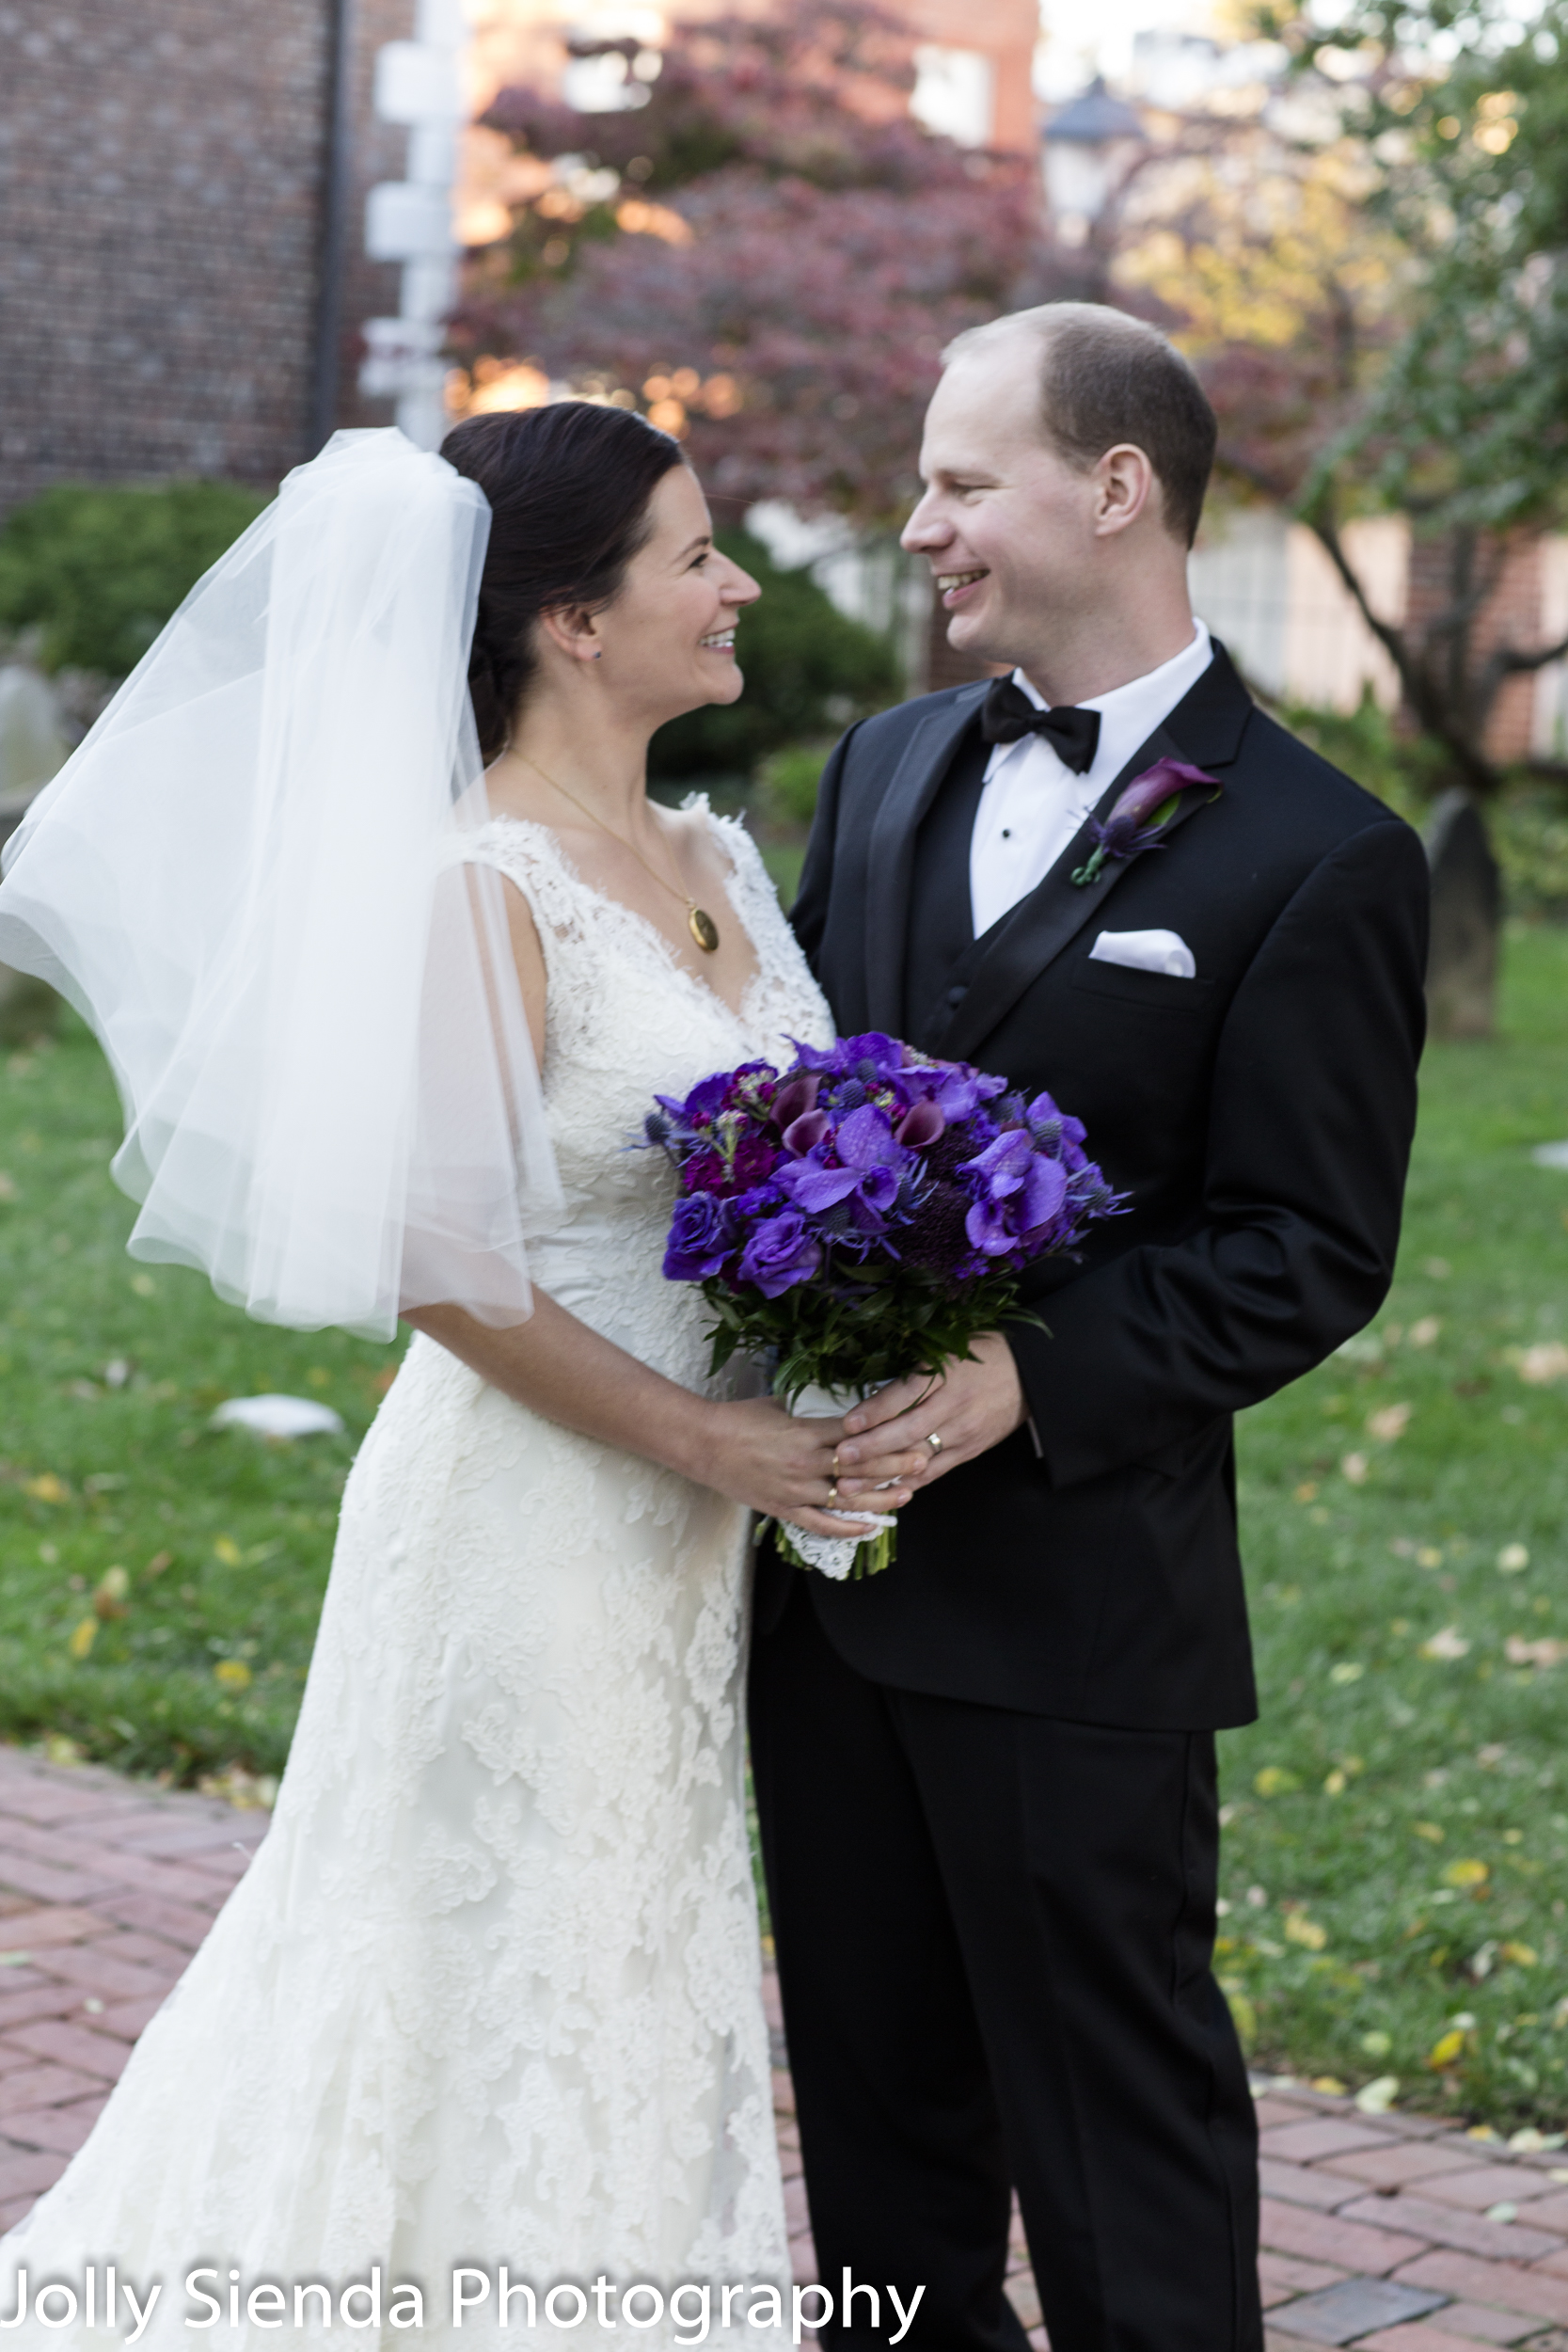 Purple wedding bouquet and the bride and groom